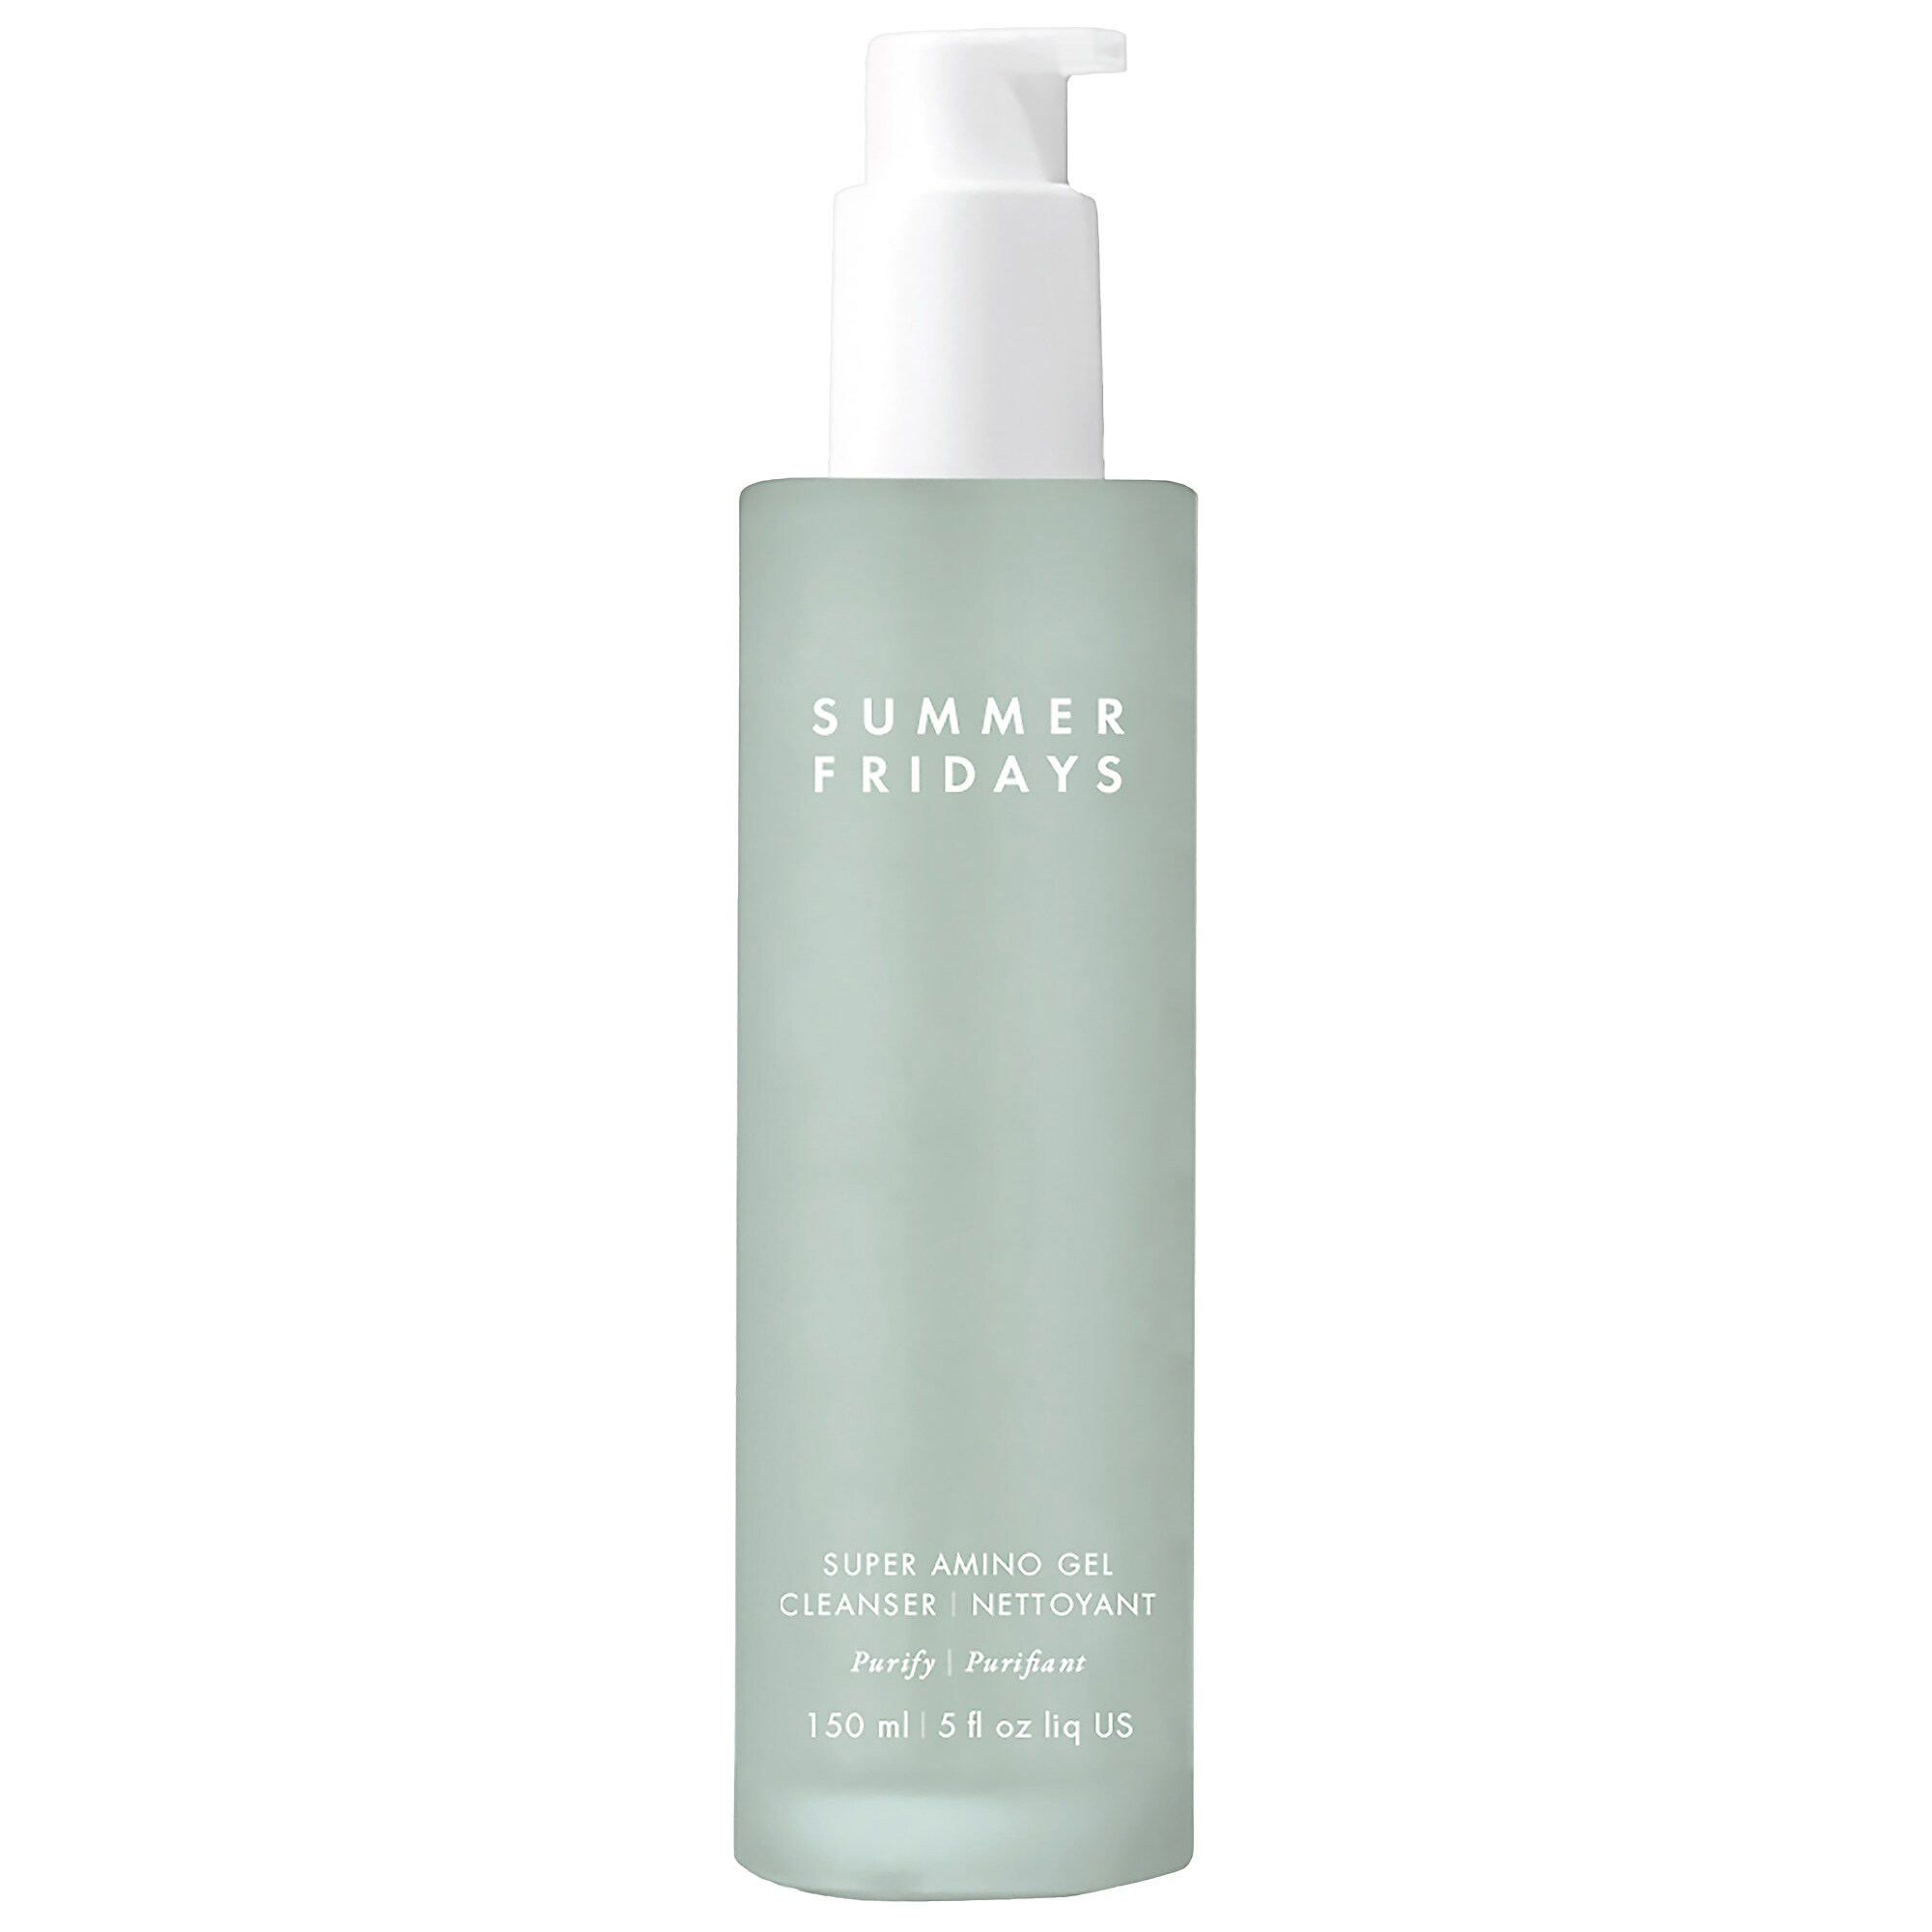 Summer Fridays - Super Amino Gel Cleanser